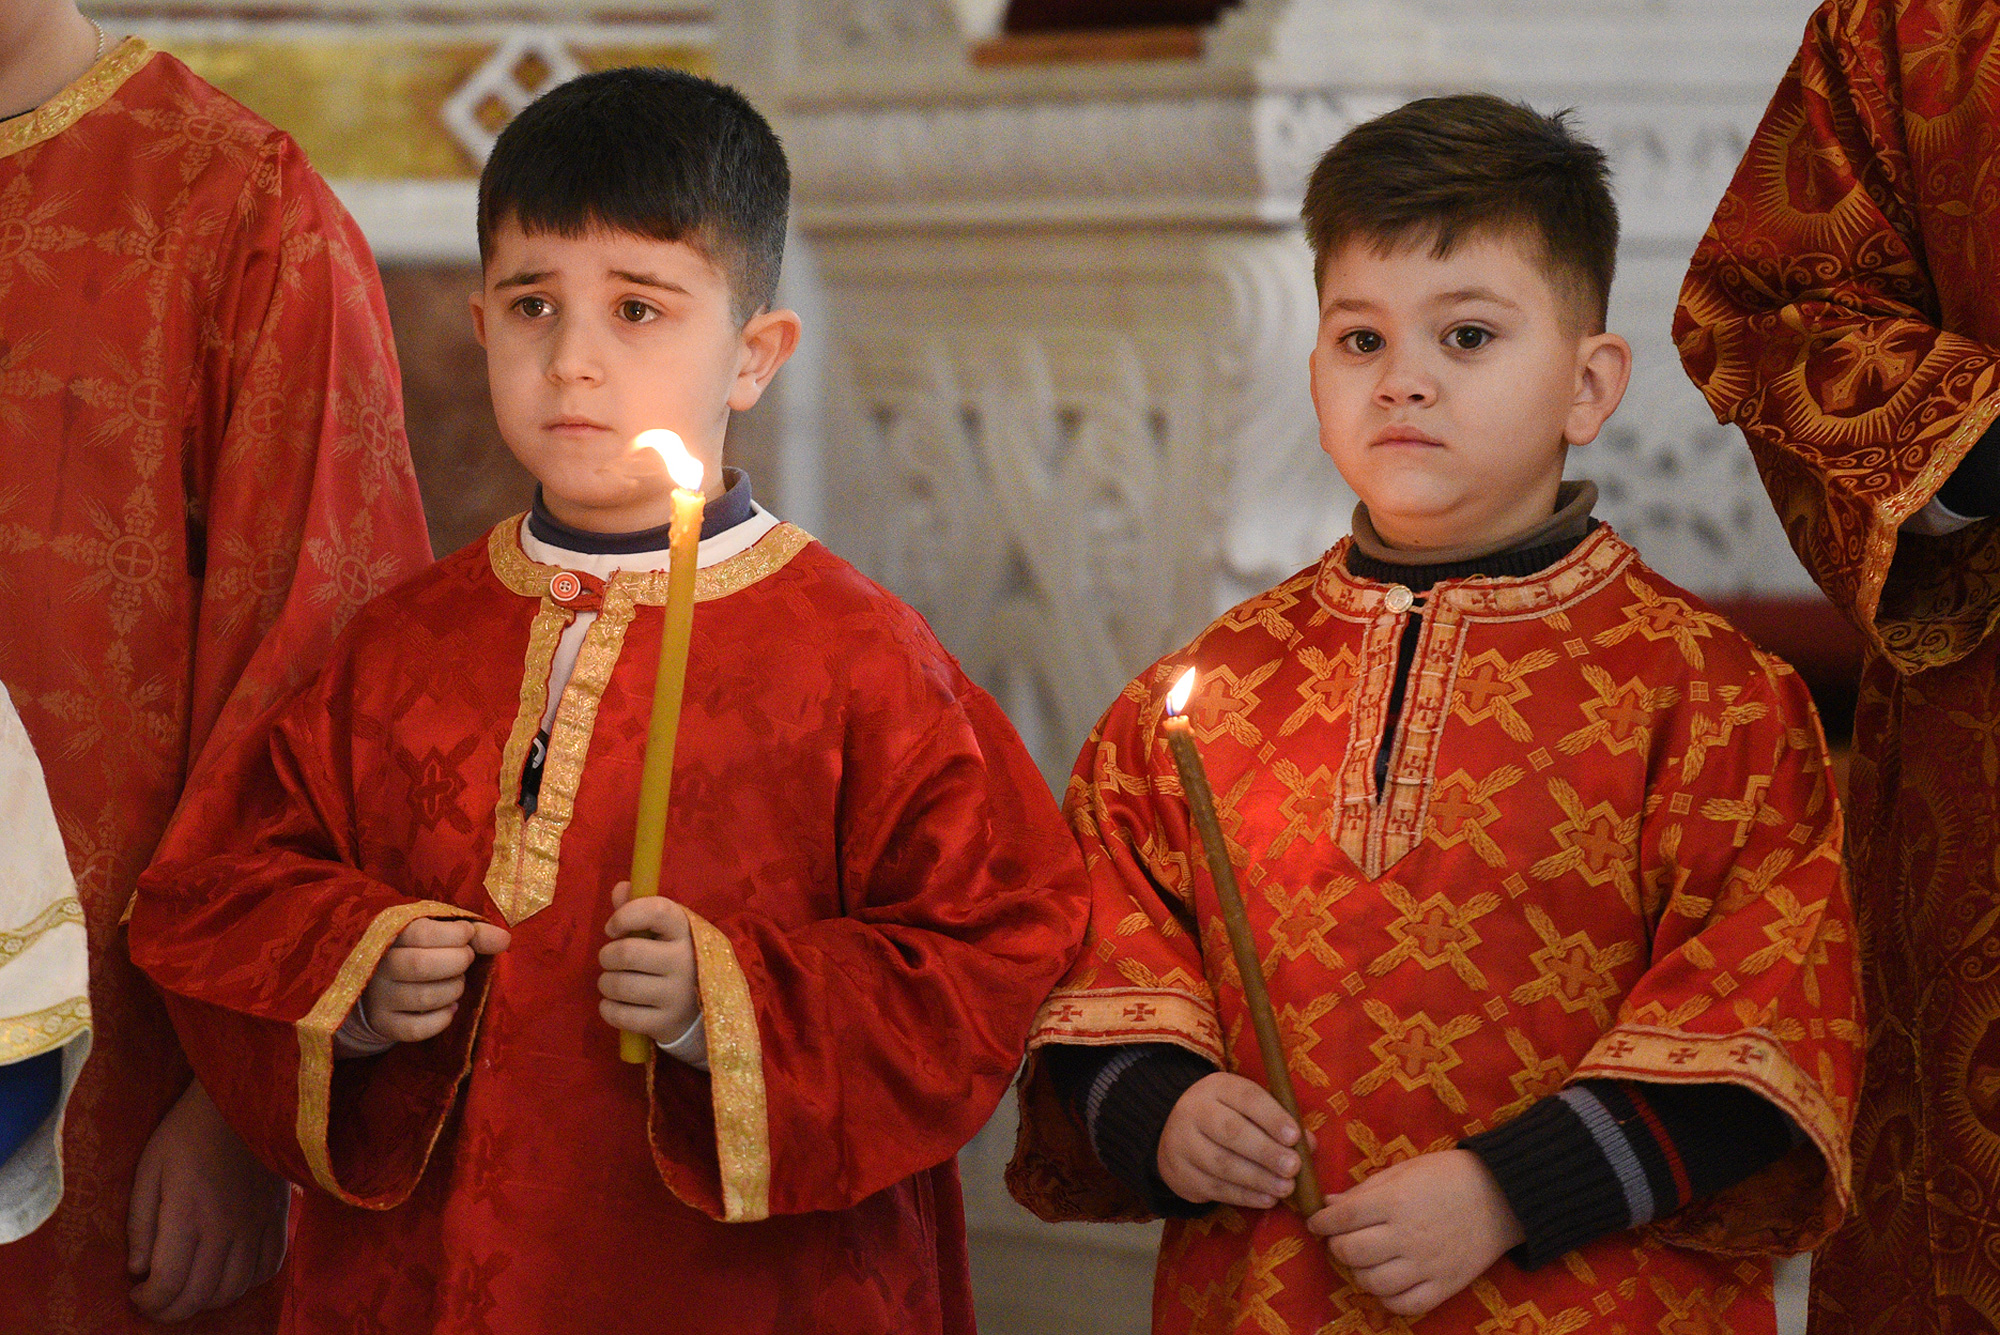 Liturgy at cathedral in Tirana